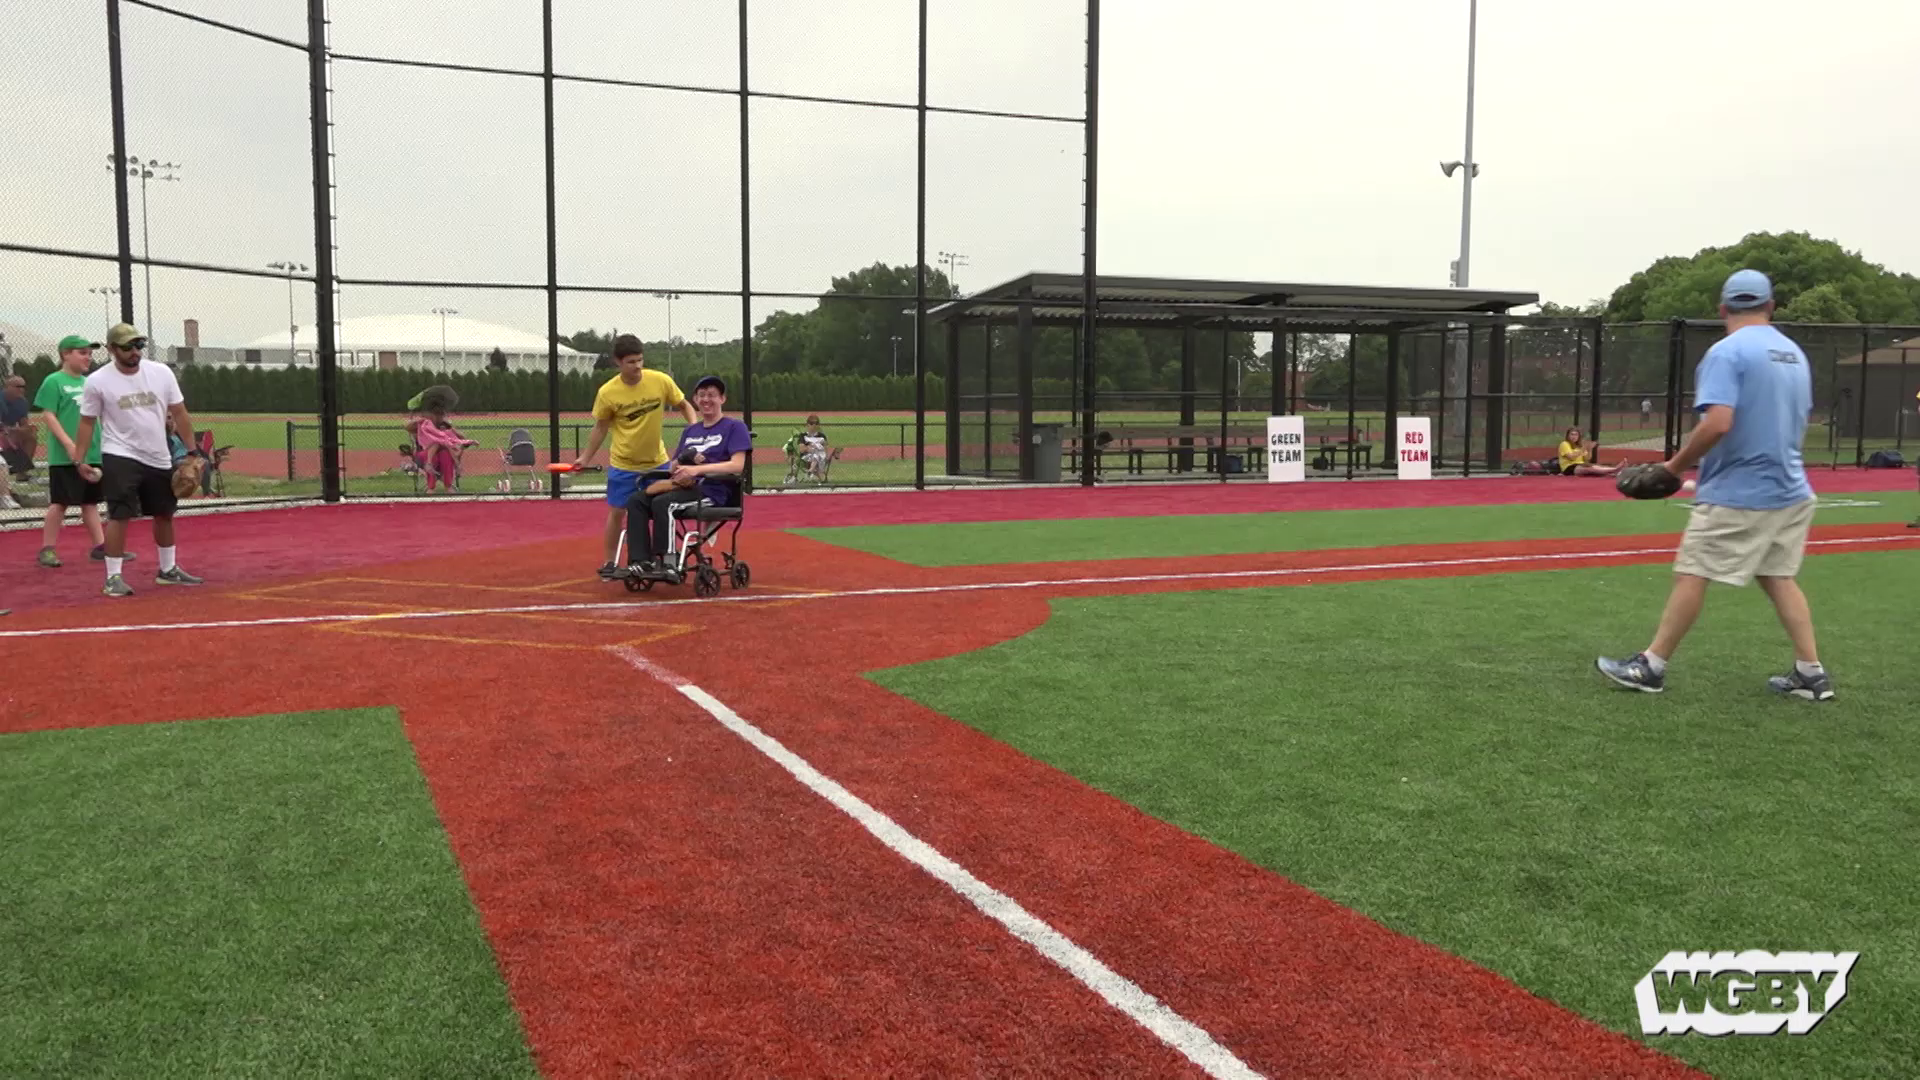 The Miracle League of Western Massachusetts was founded to provide children and adults of all abilities with the chance to play baseball. Thanks to the help of many volunteers, players take to the fields at Springfield College on Sunday mornings to engage in America's favorite pastime.